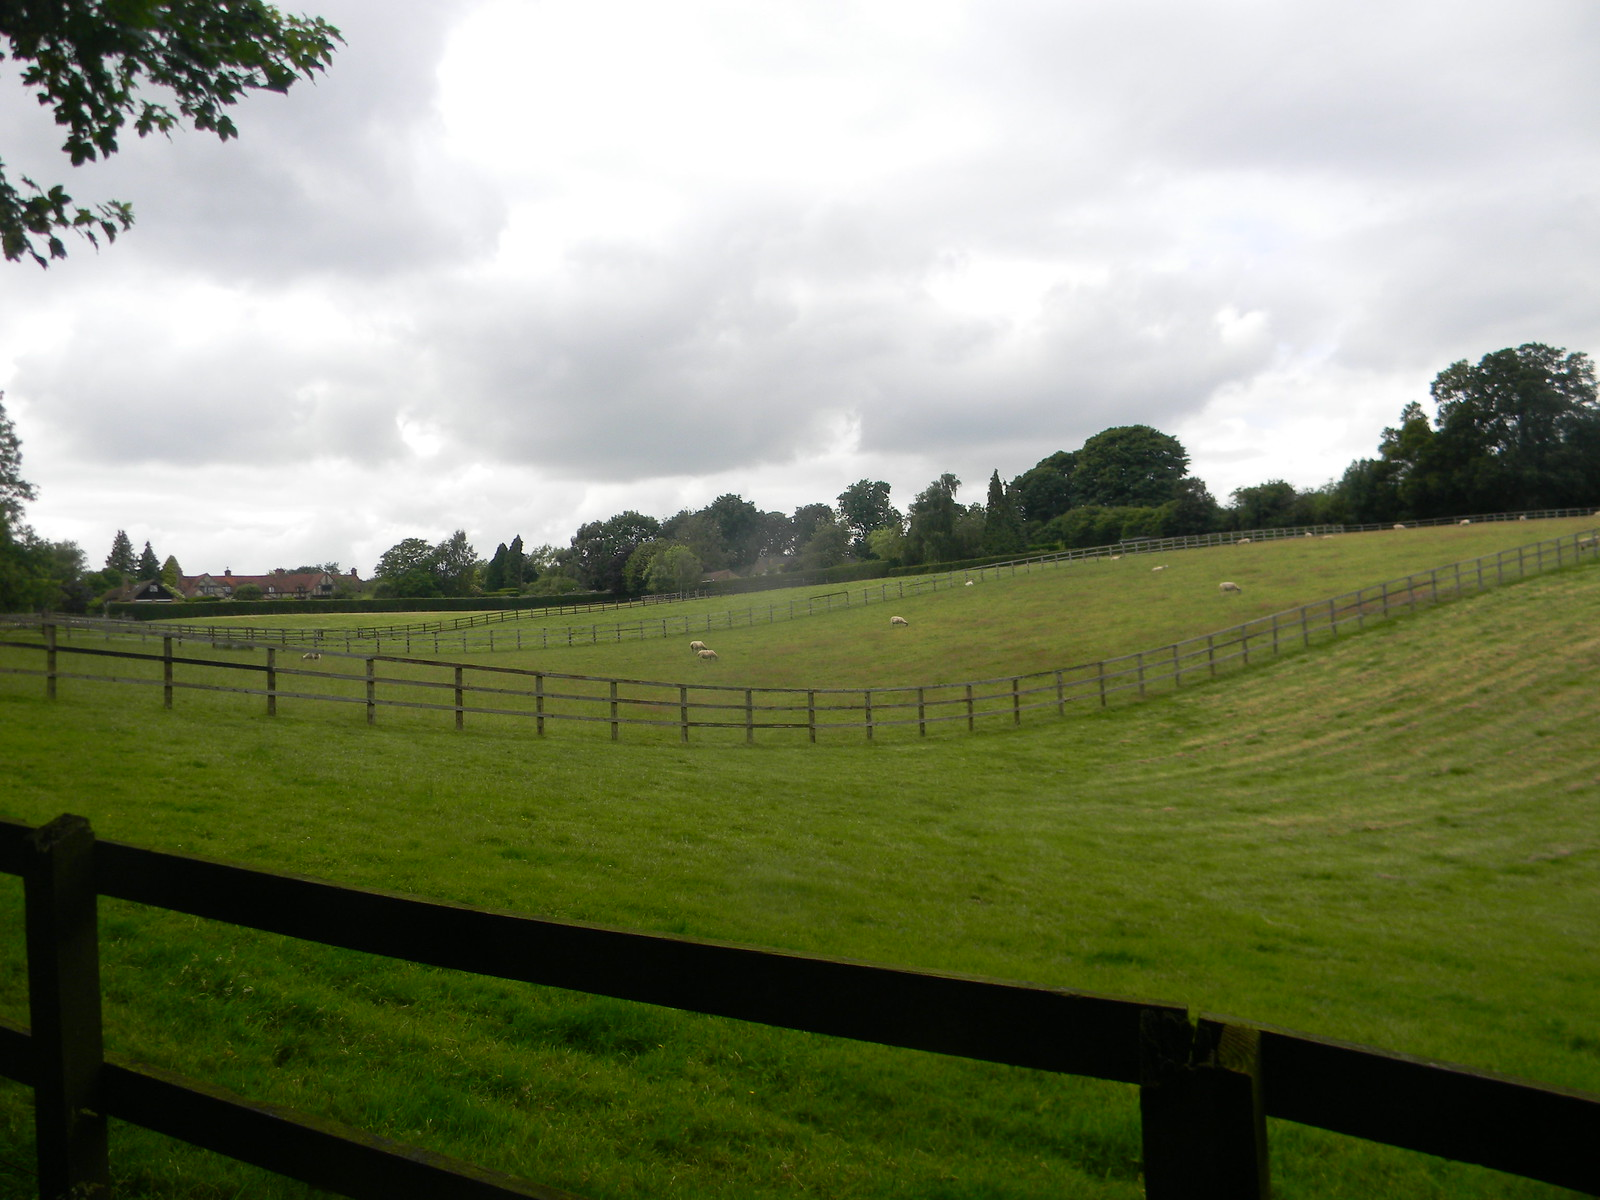 View with fences Wendover to Great Missenden via Swan Bottom